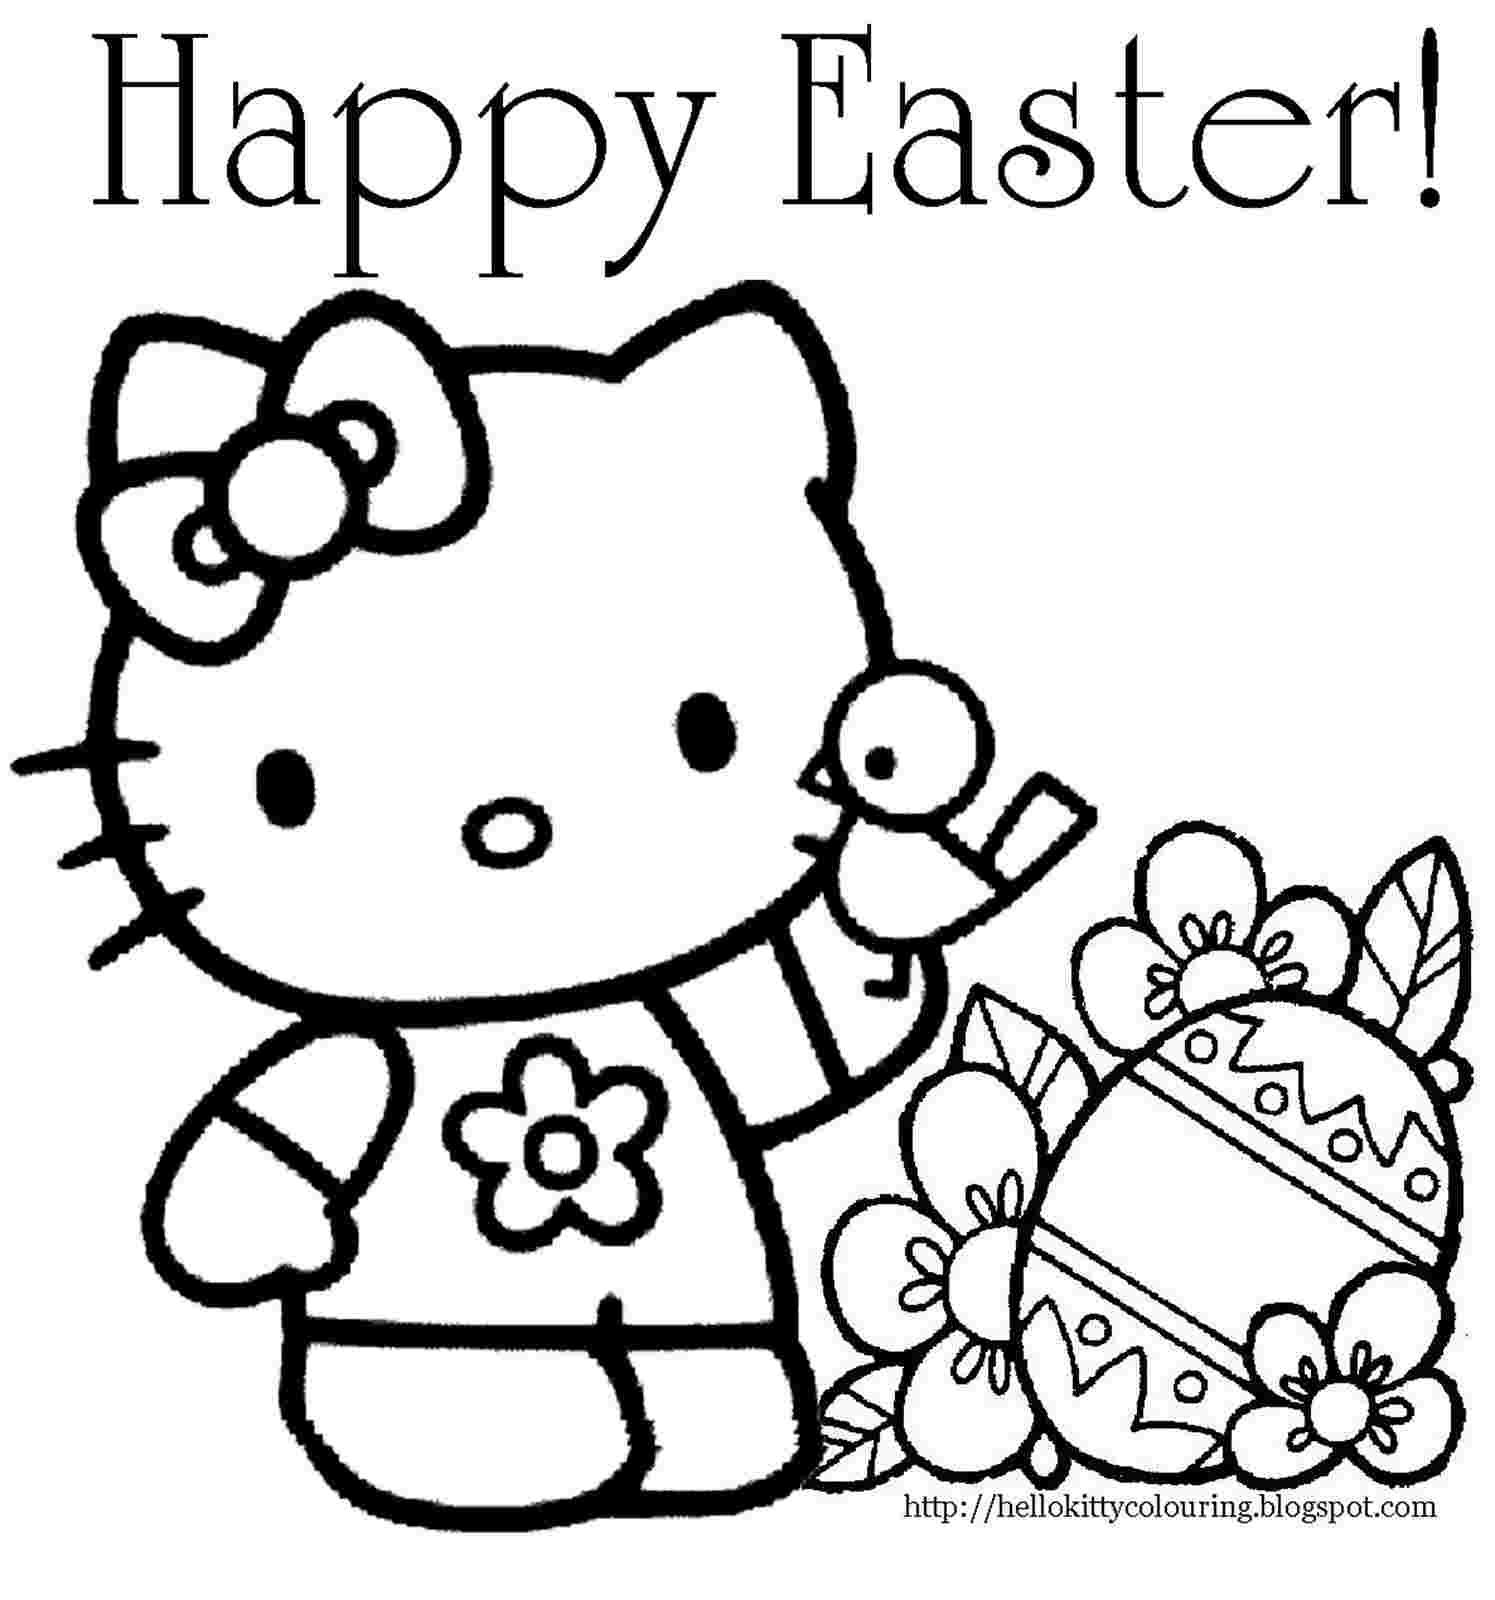 Fre easter coloring pages   Hello kitty colouring pages, Hello ...